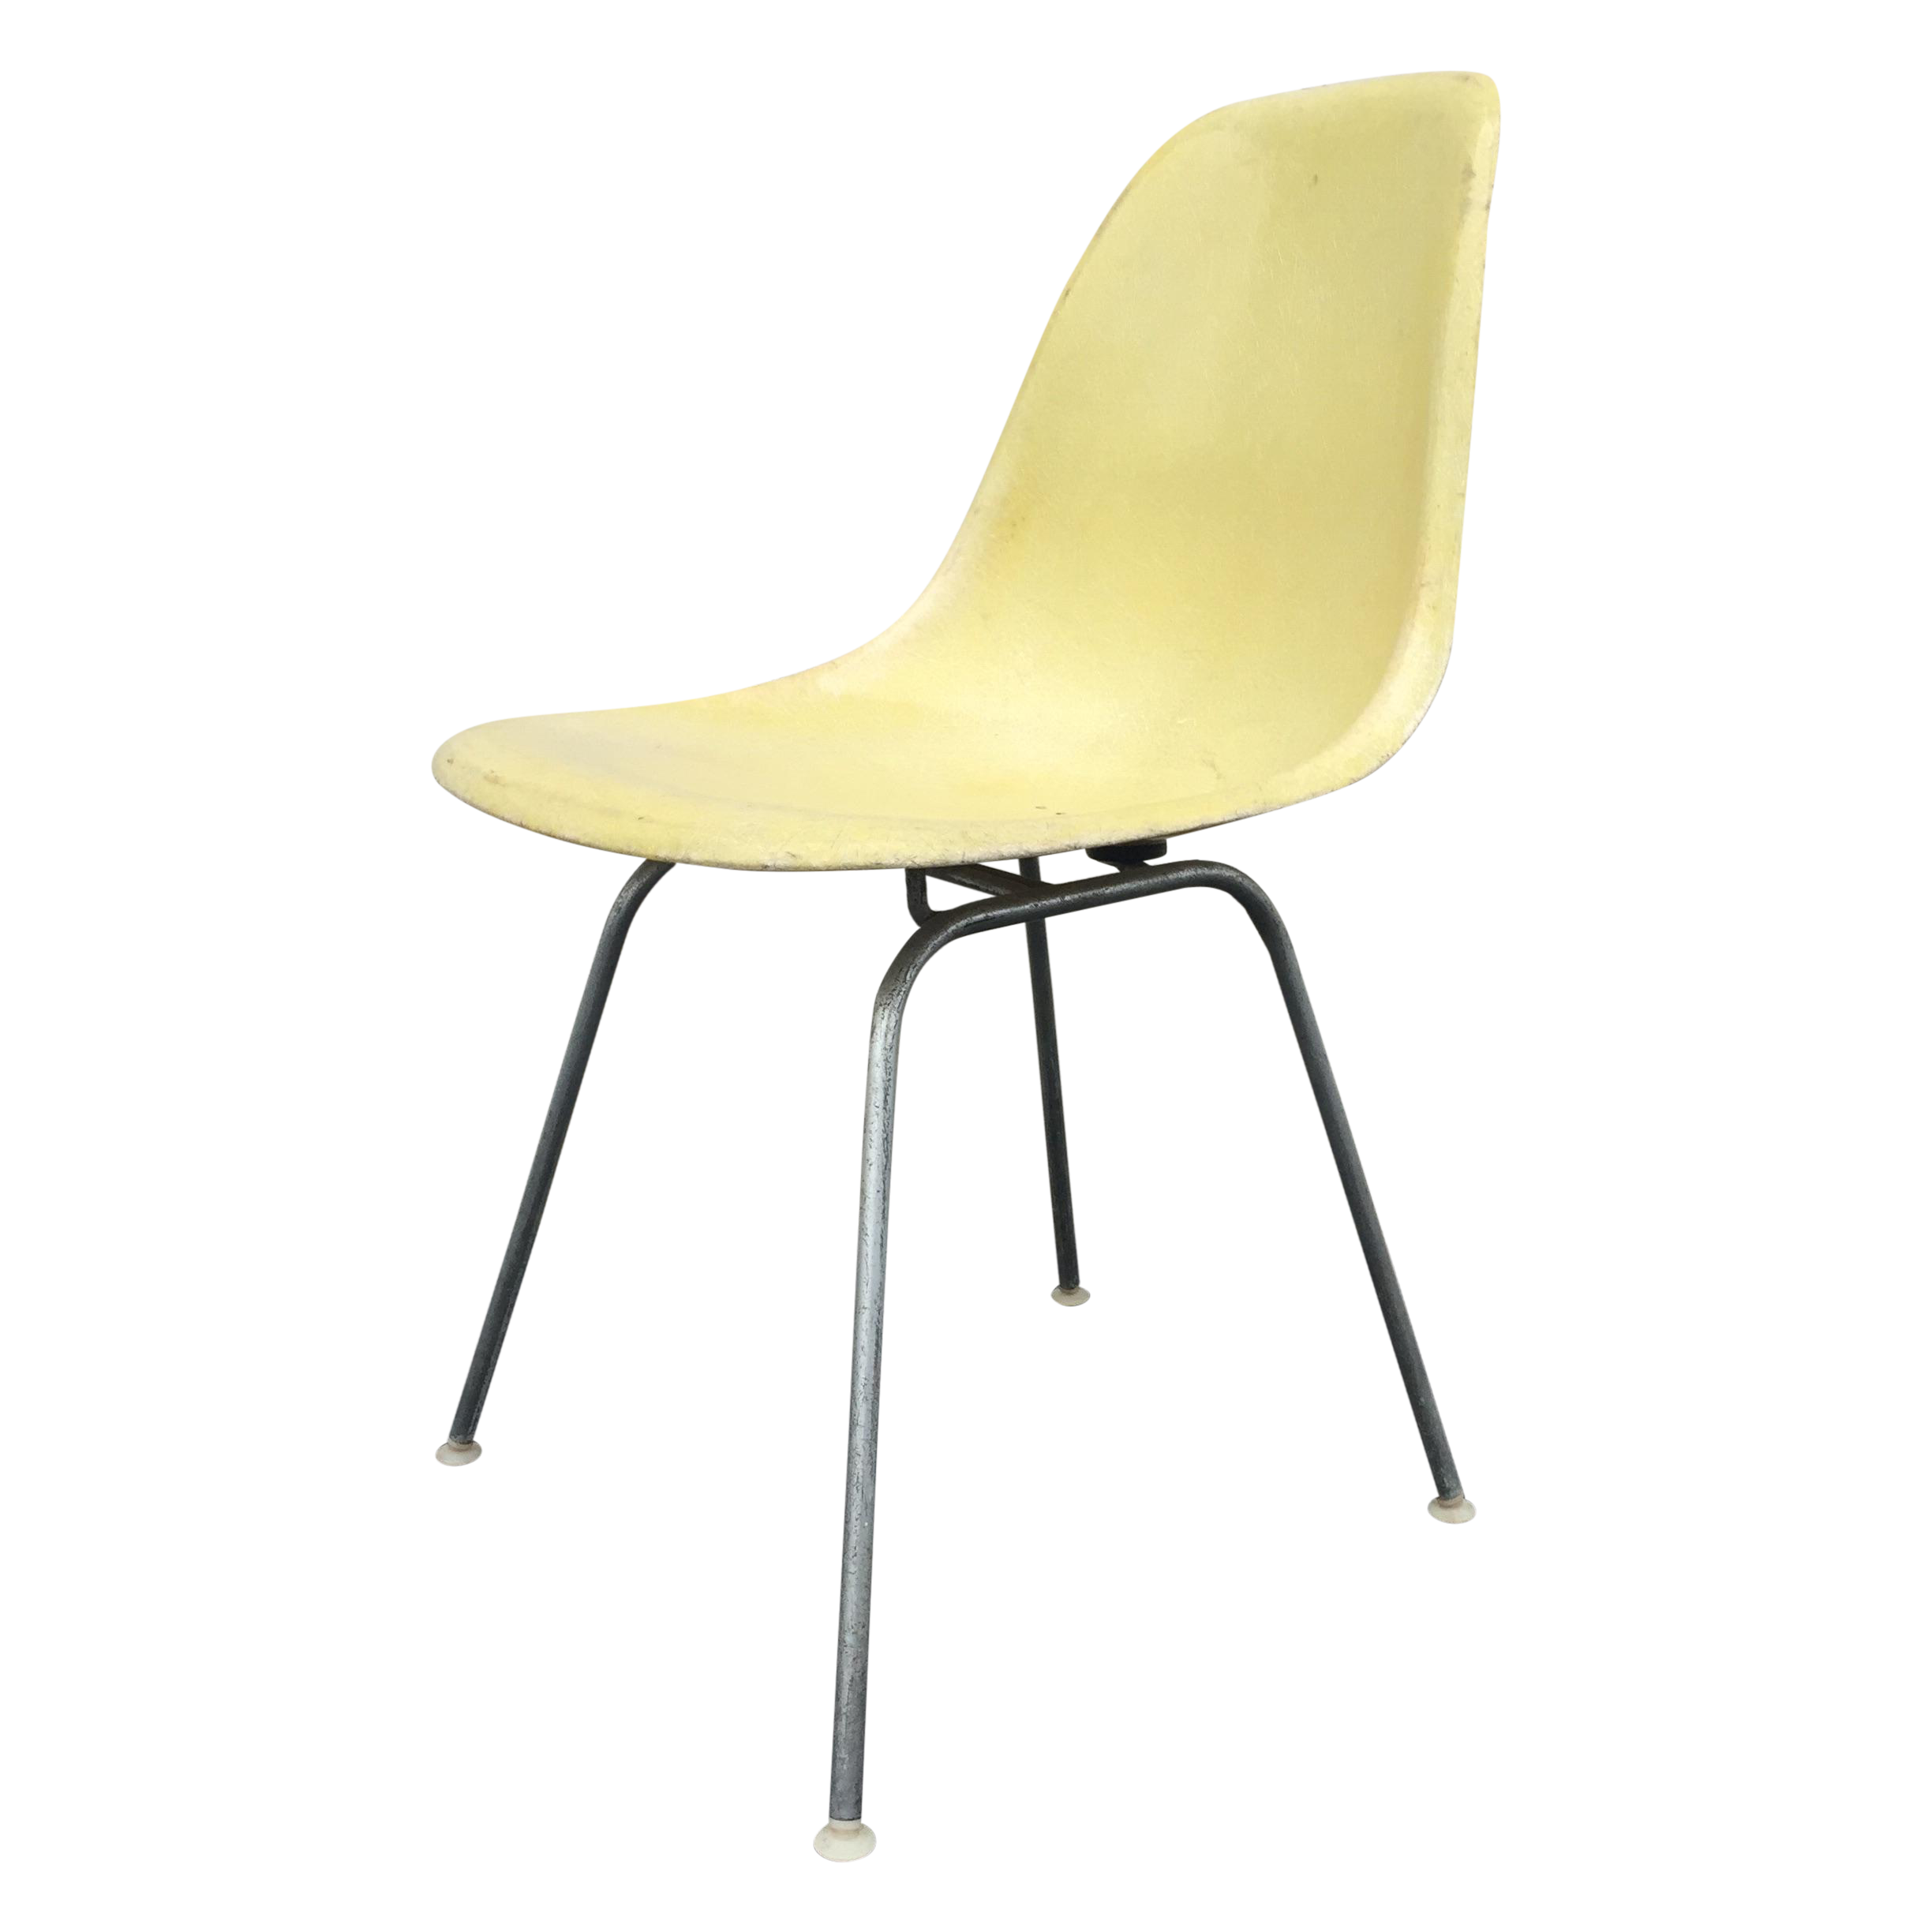 Mid century modern eames chair cool cleaning the chair for Chaise eames dsw transparent